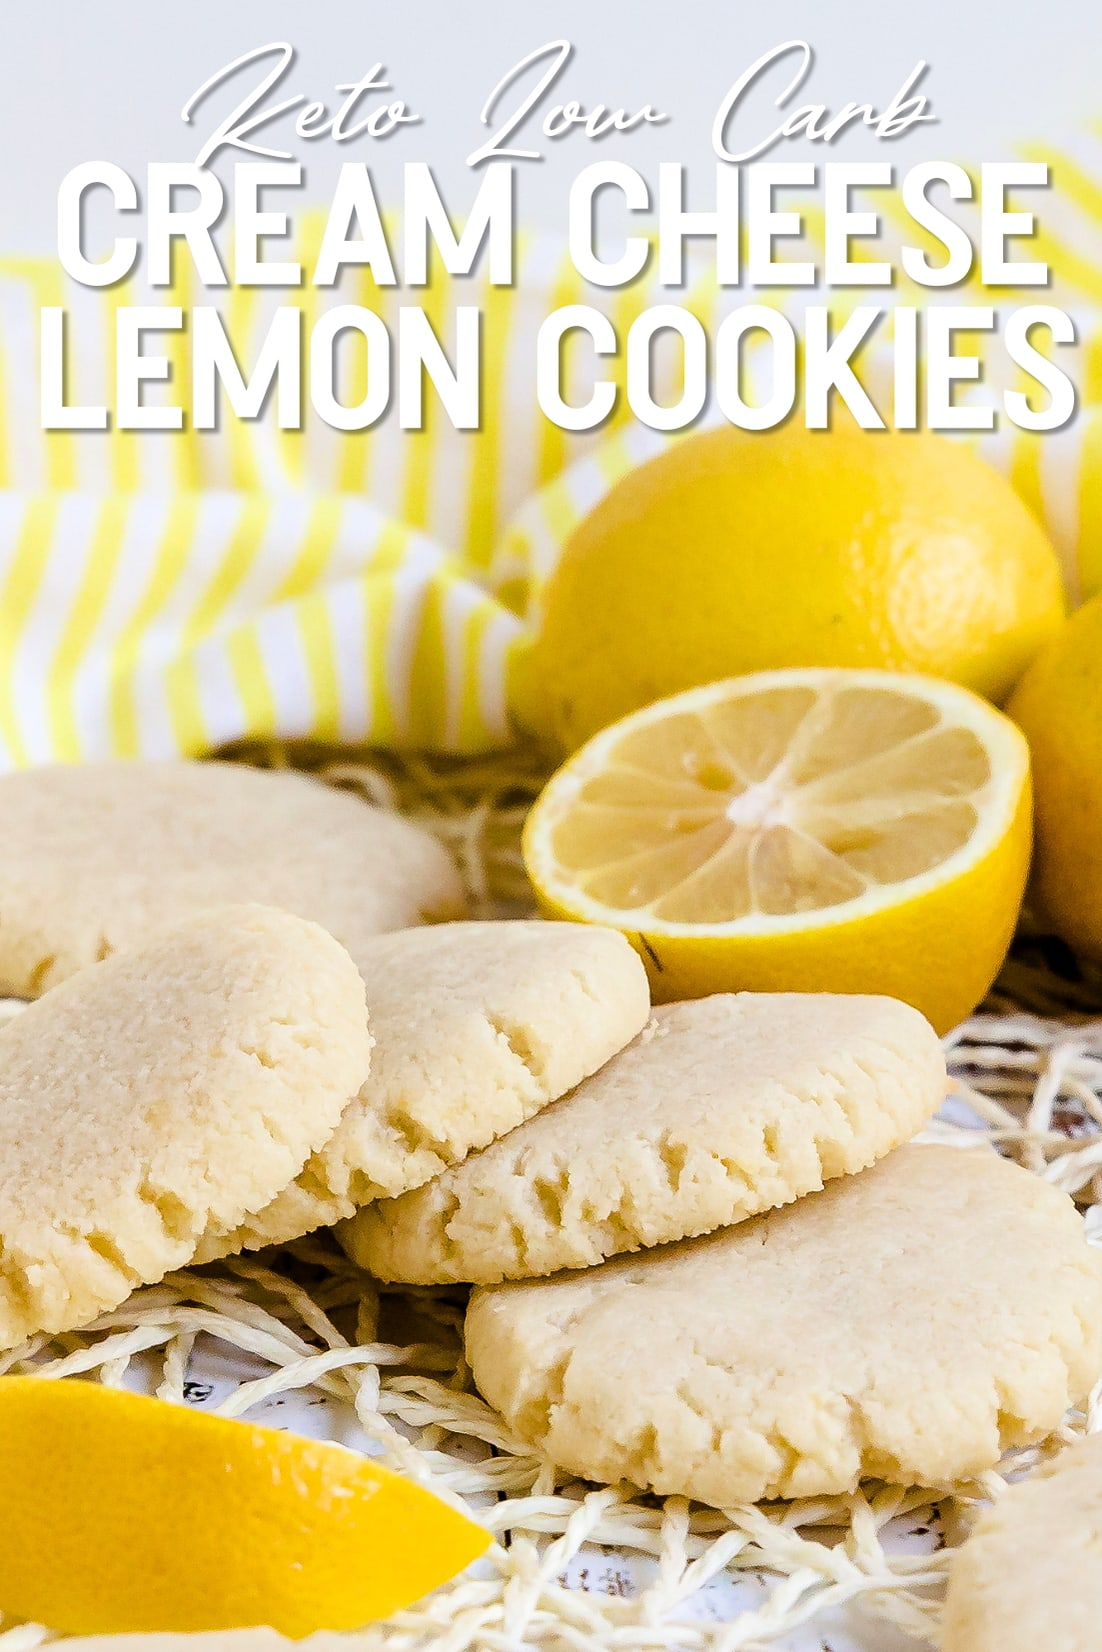 Keto Low Carb Cream Cheese Lemon Cookies Stacked together